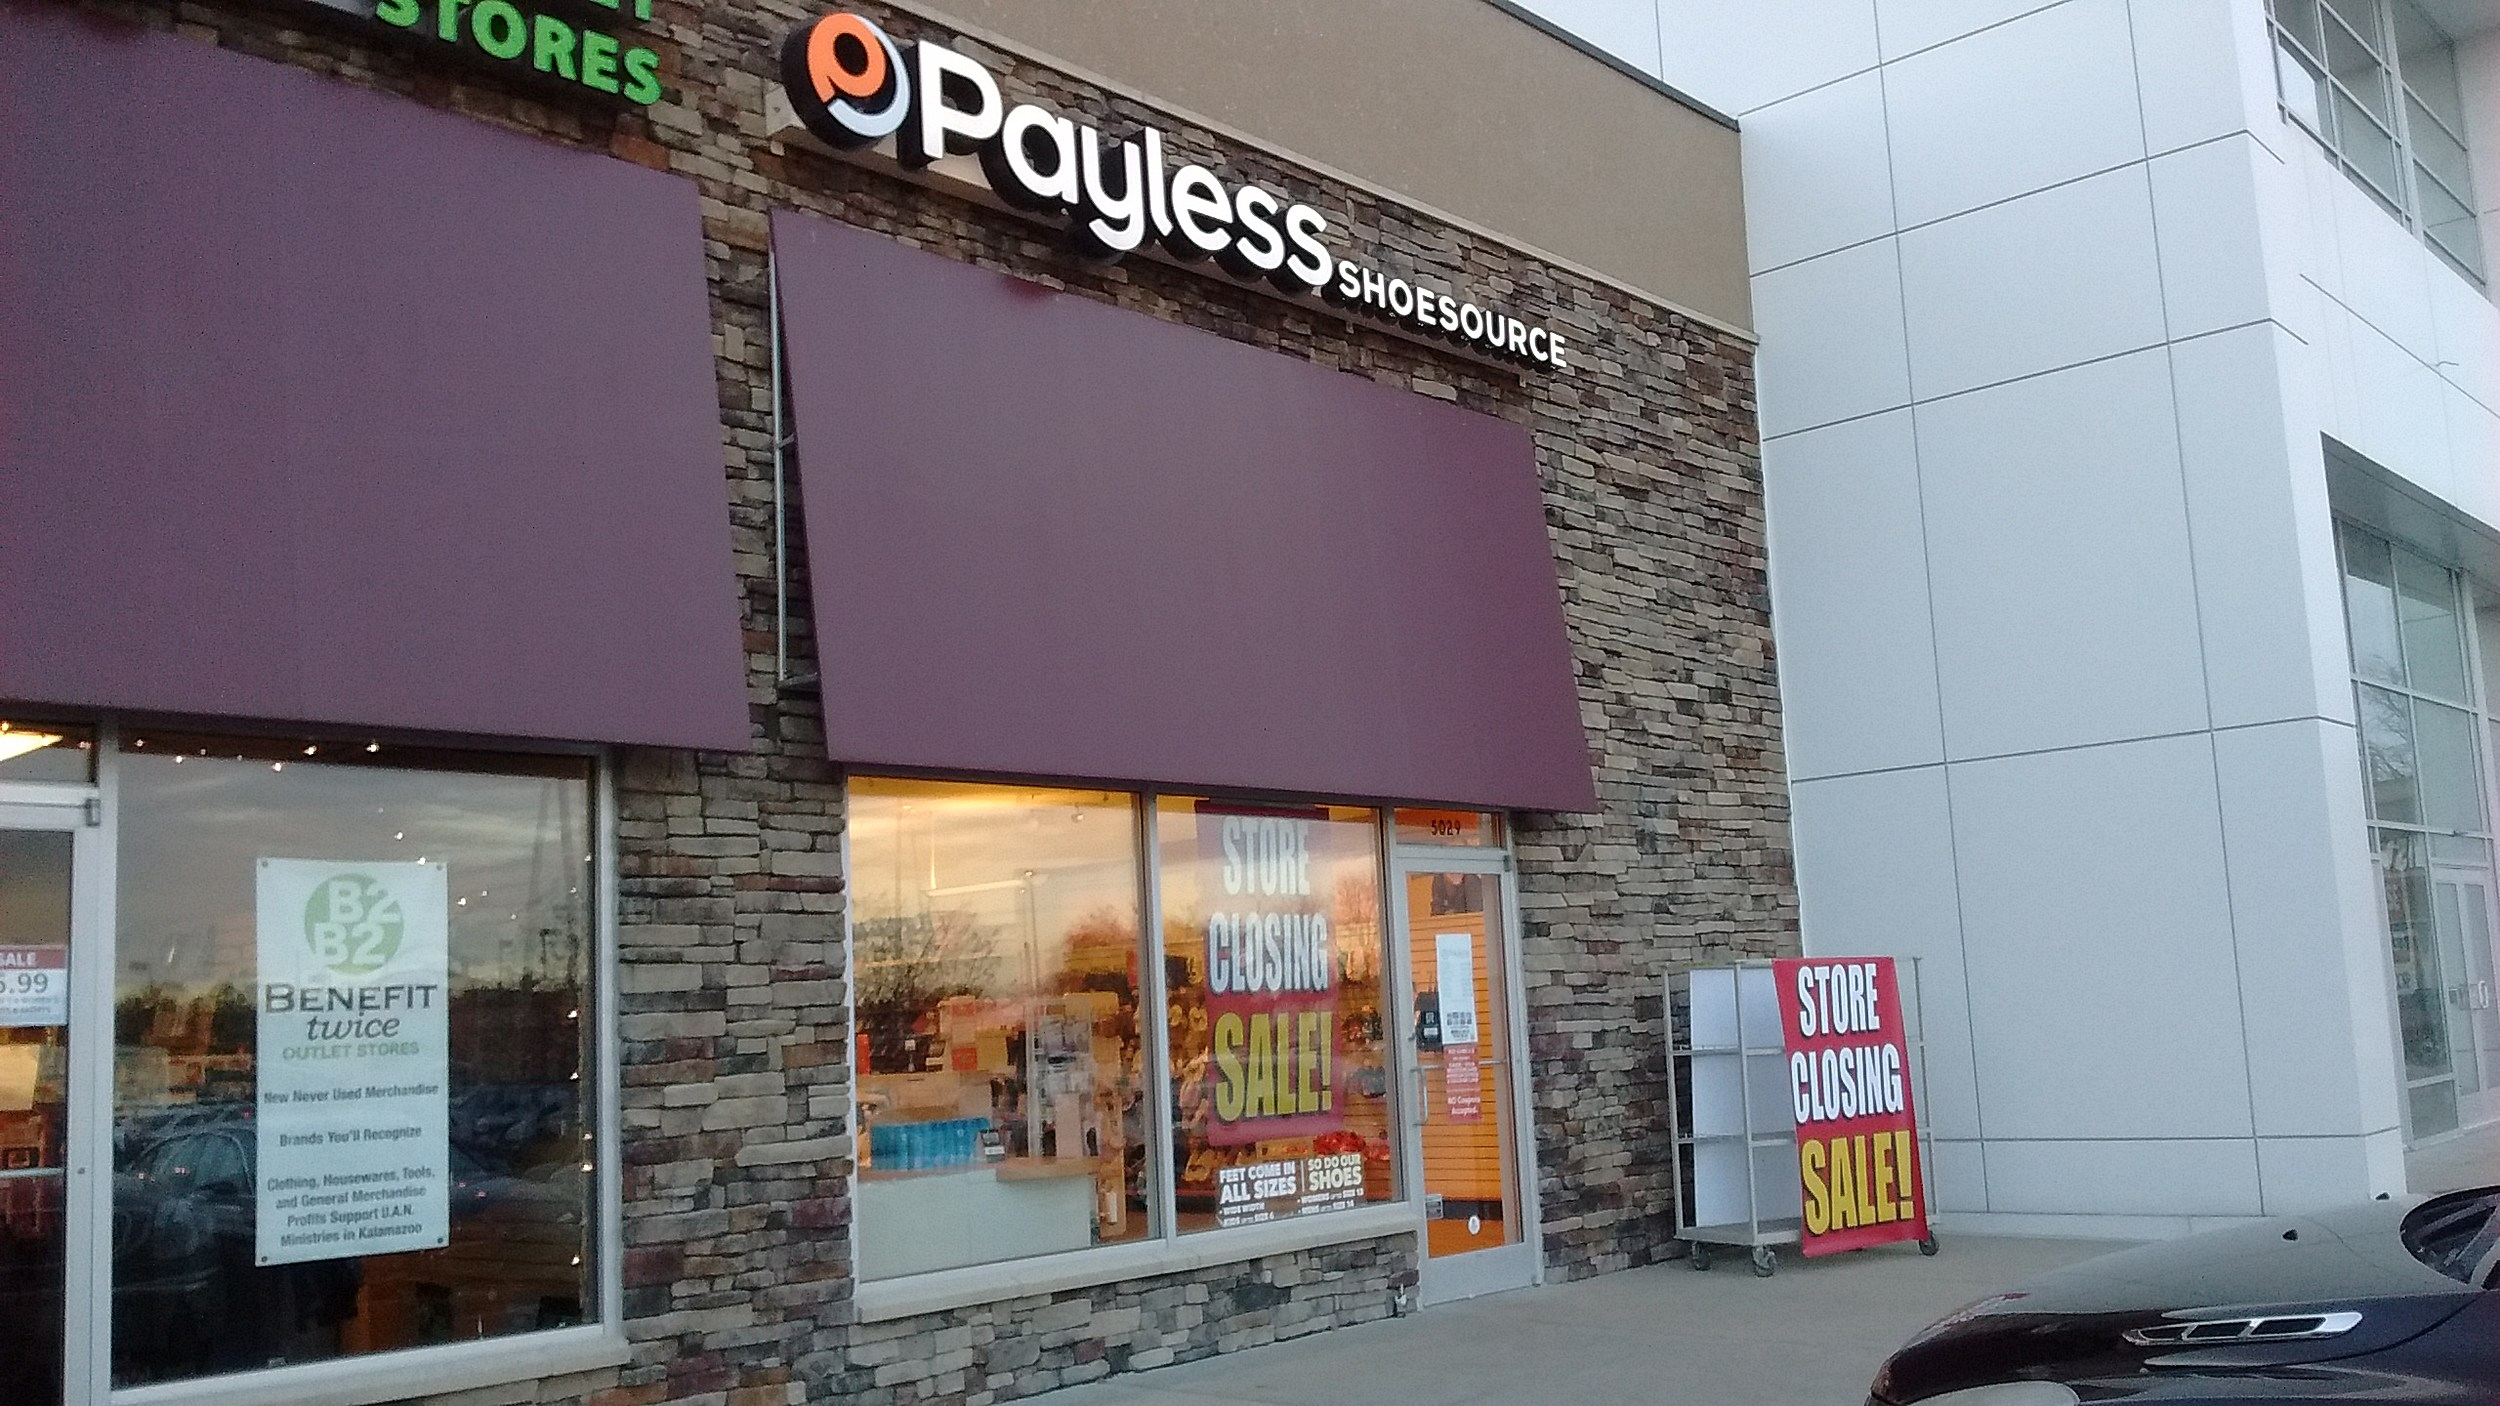 Payless ShoeSource to close all its U.S. stores, per report